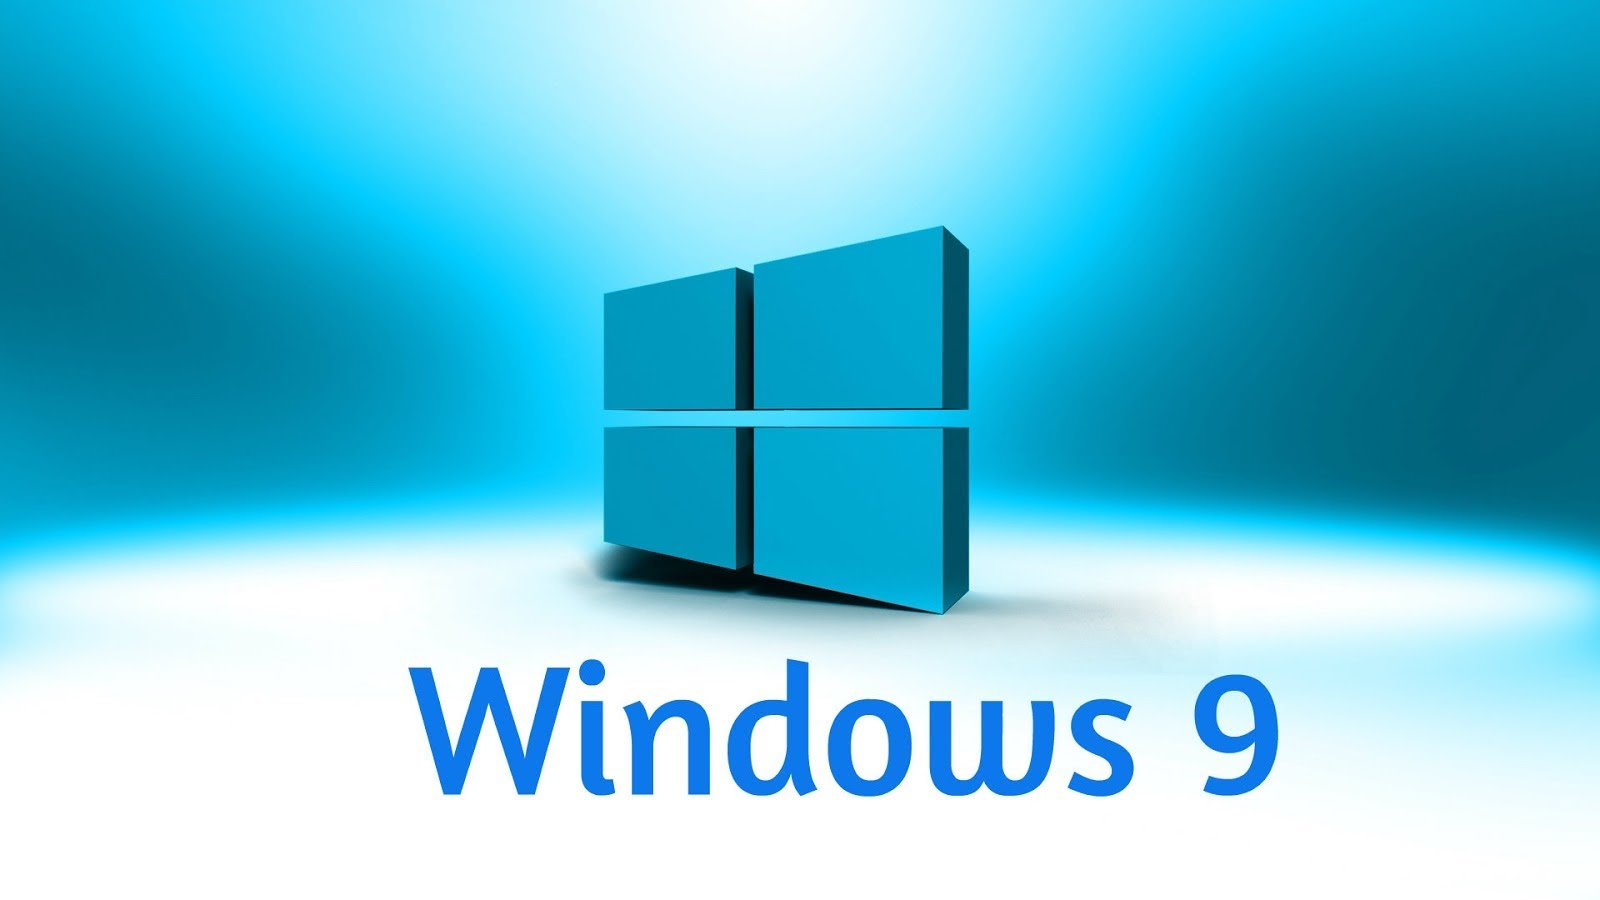 Nice Images Collection: Windows 9 Desktop Wallpapers